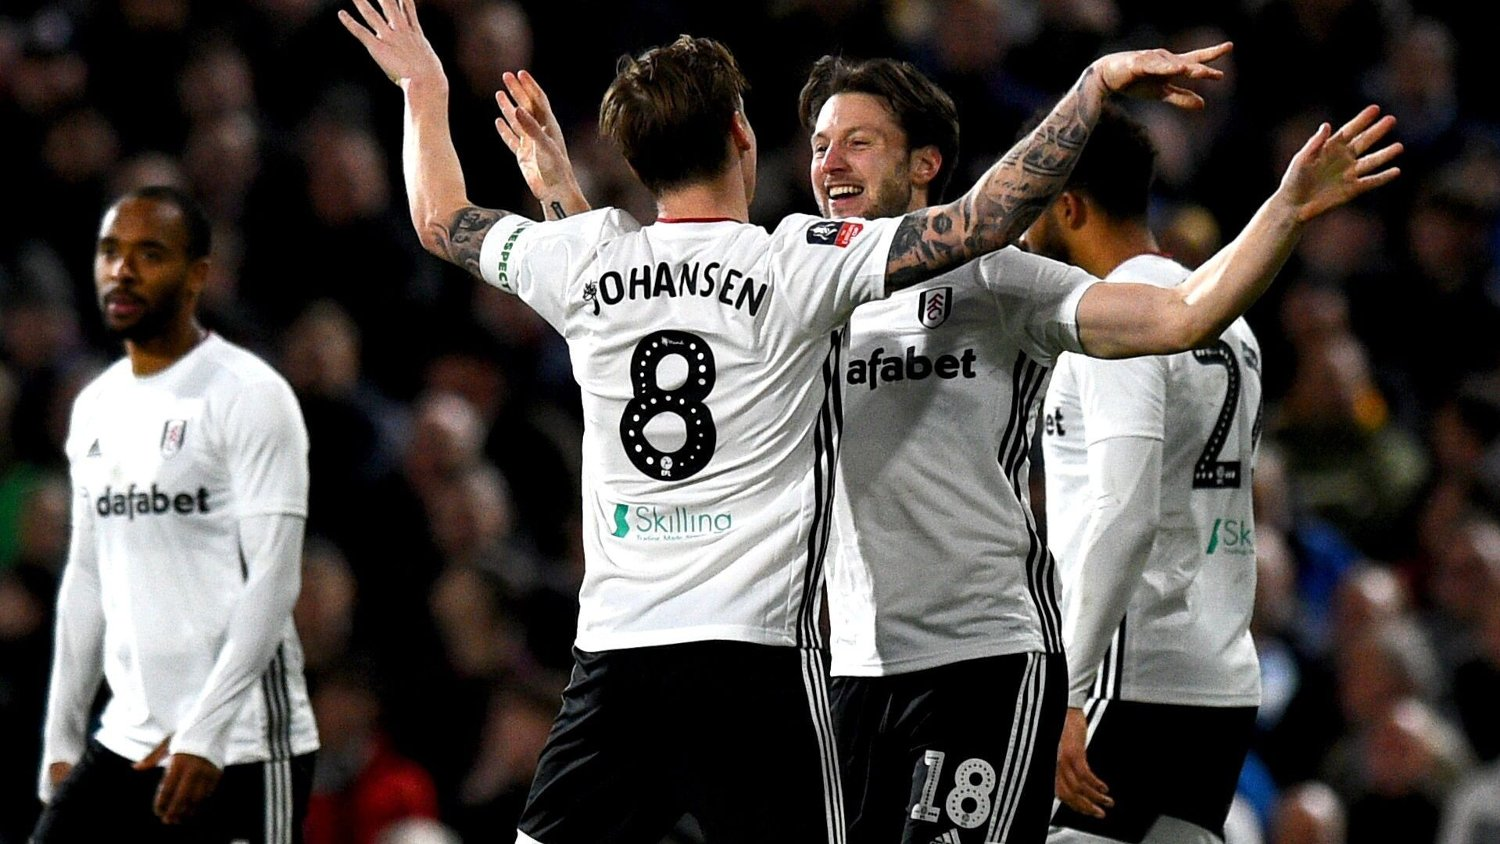 Fulham's Harry Arter celebrates scoring his side's second goal of the game with team mate Stefan Johansen during the FA Cup third round match at Craven Cottage, London.